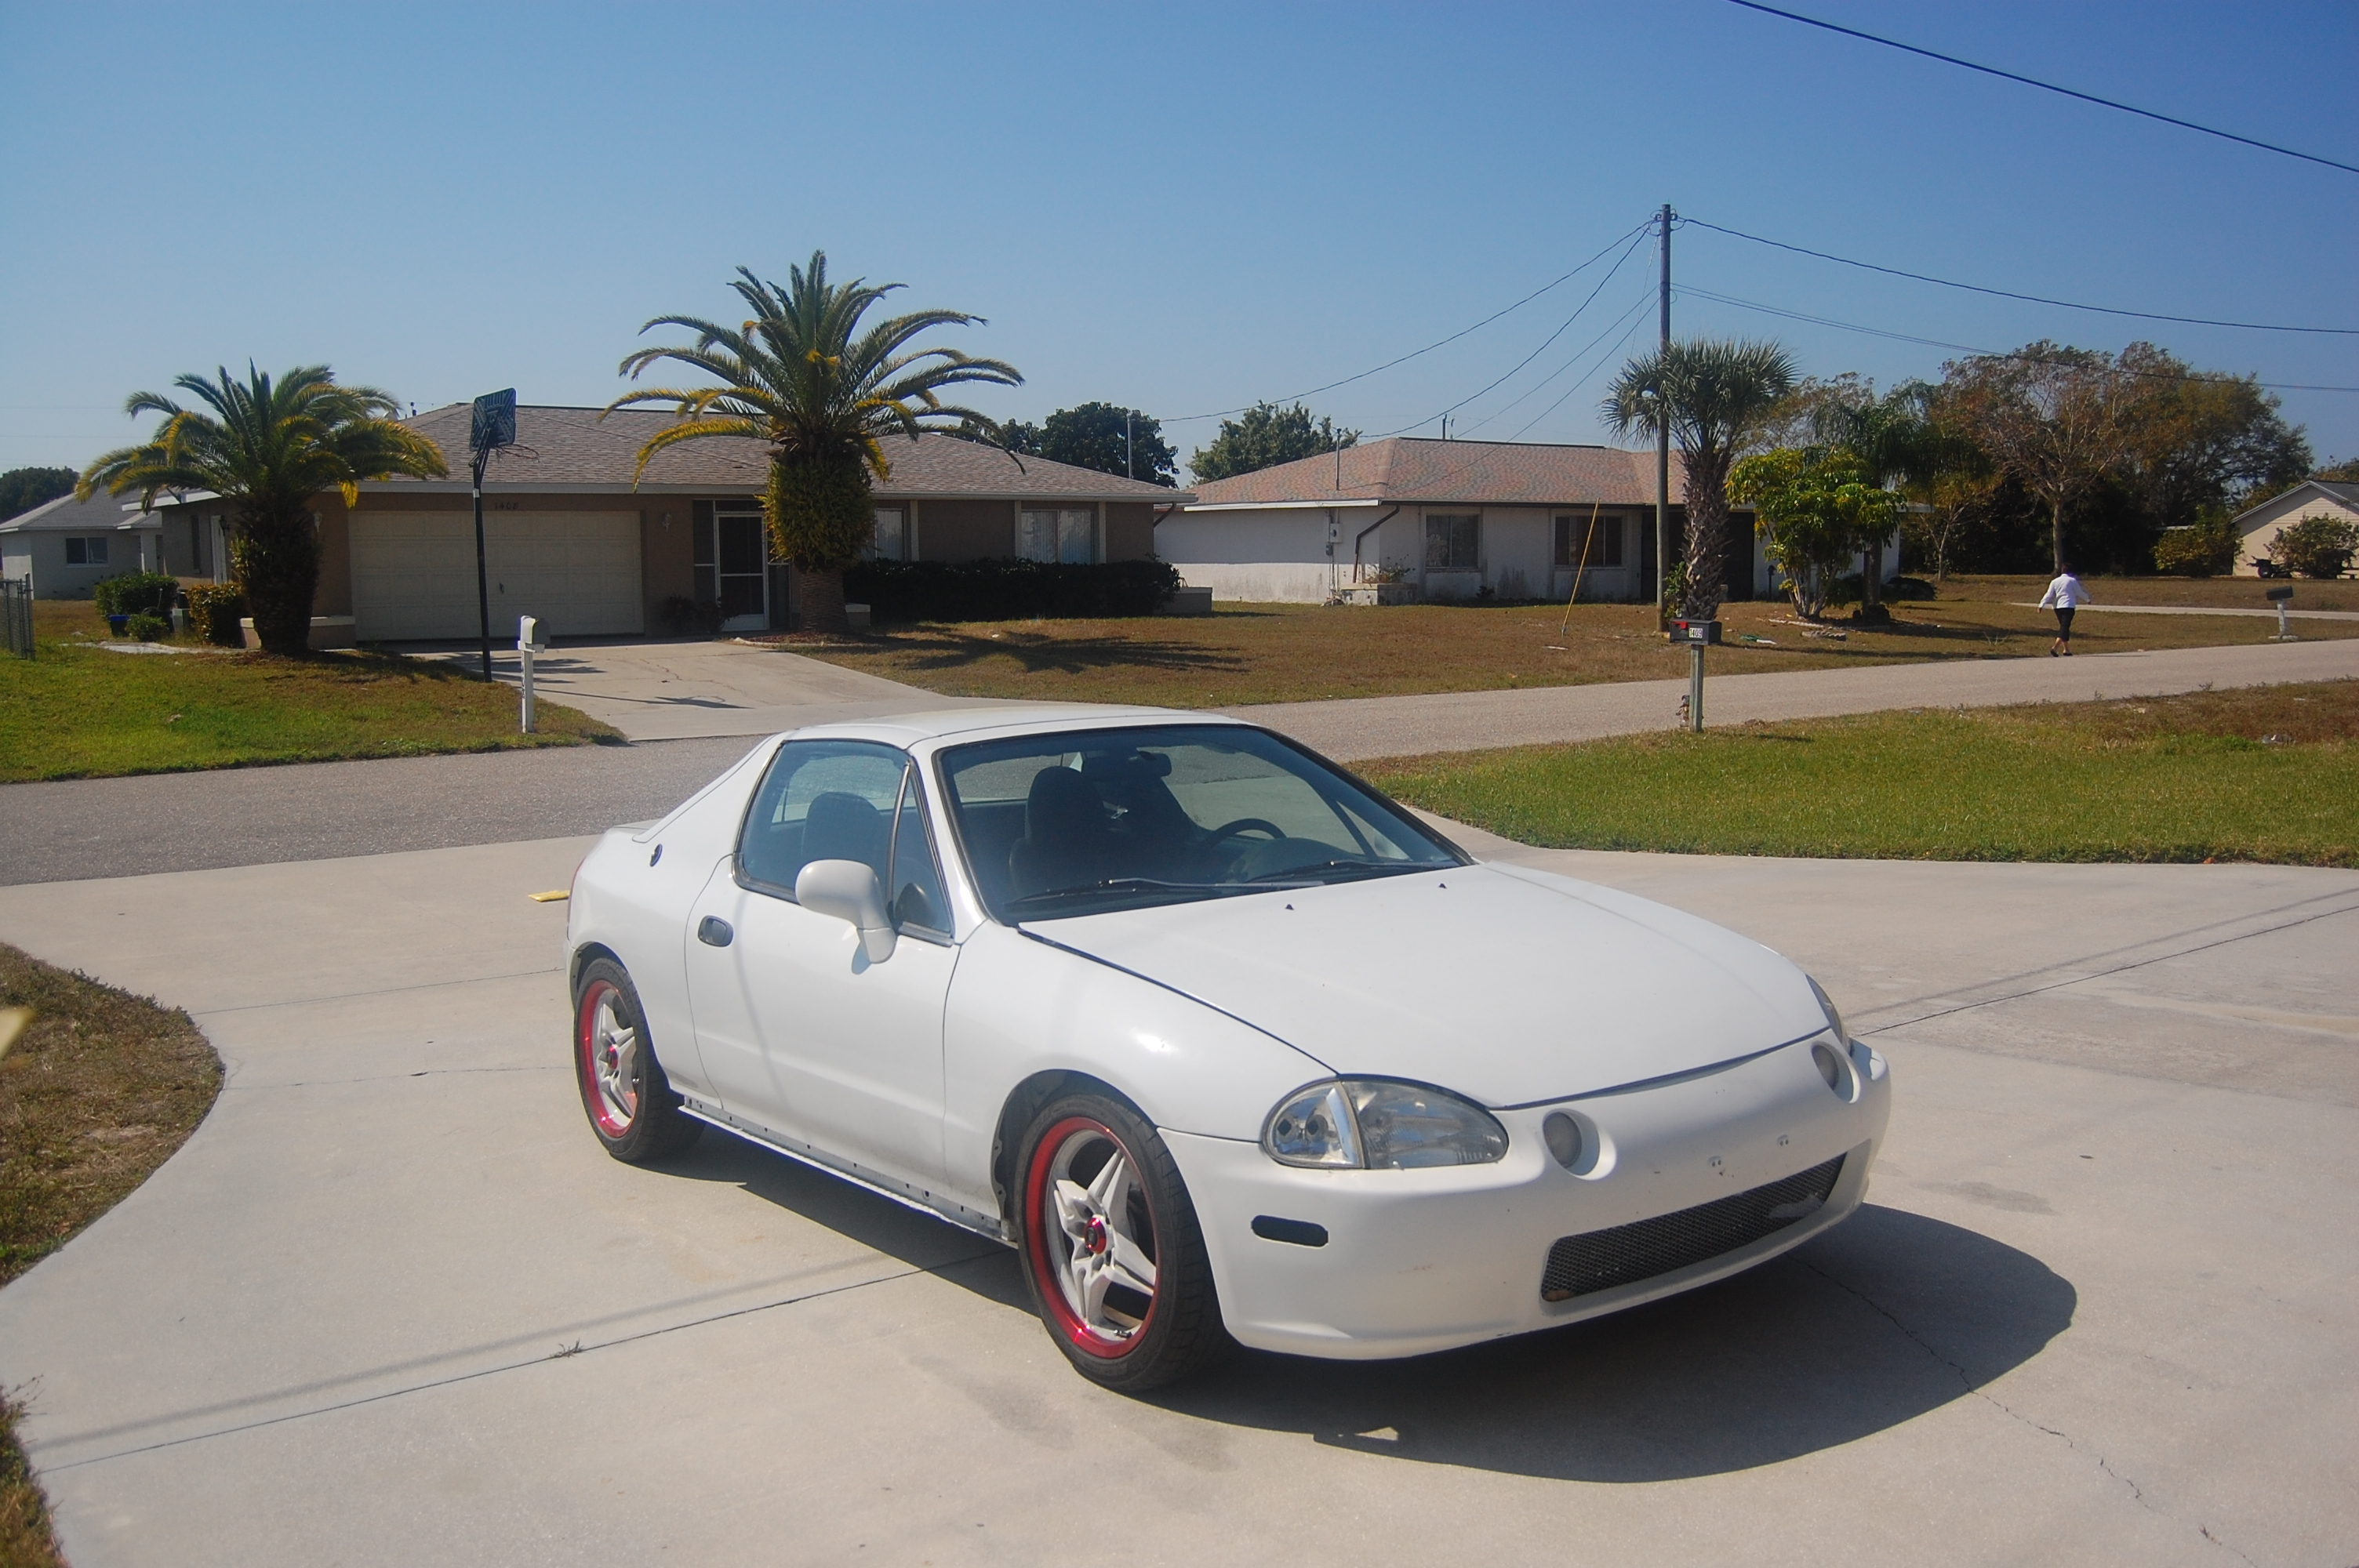 sdzrules 39 s 1995 honda del sol in cape coral fl. Black Bedroom Furniture Sets. Home Design Ideas